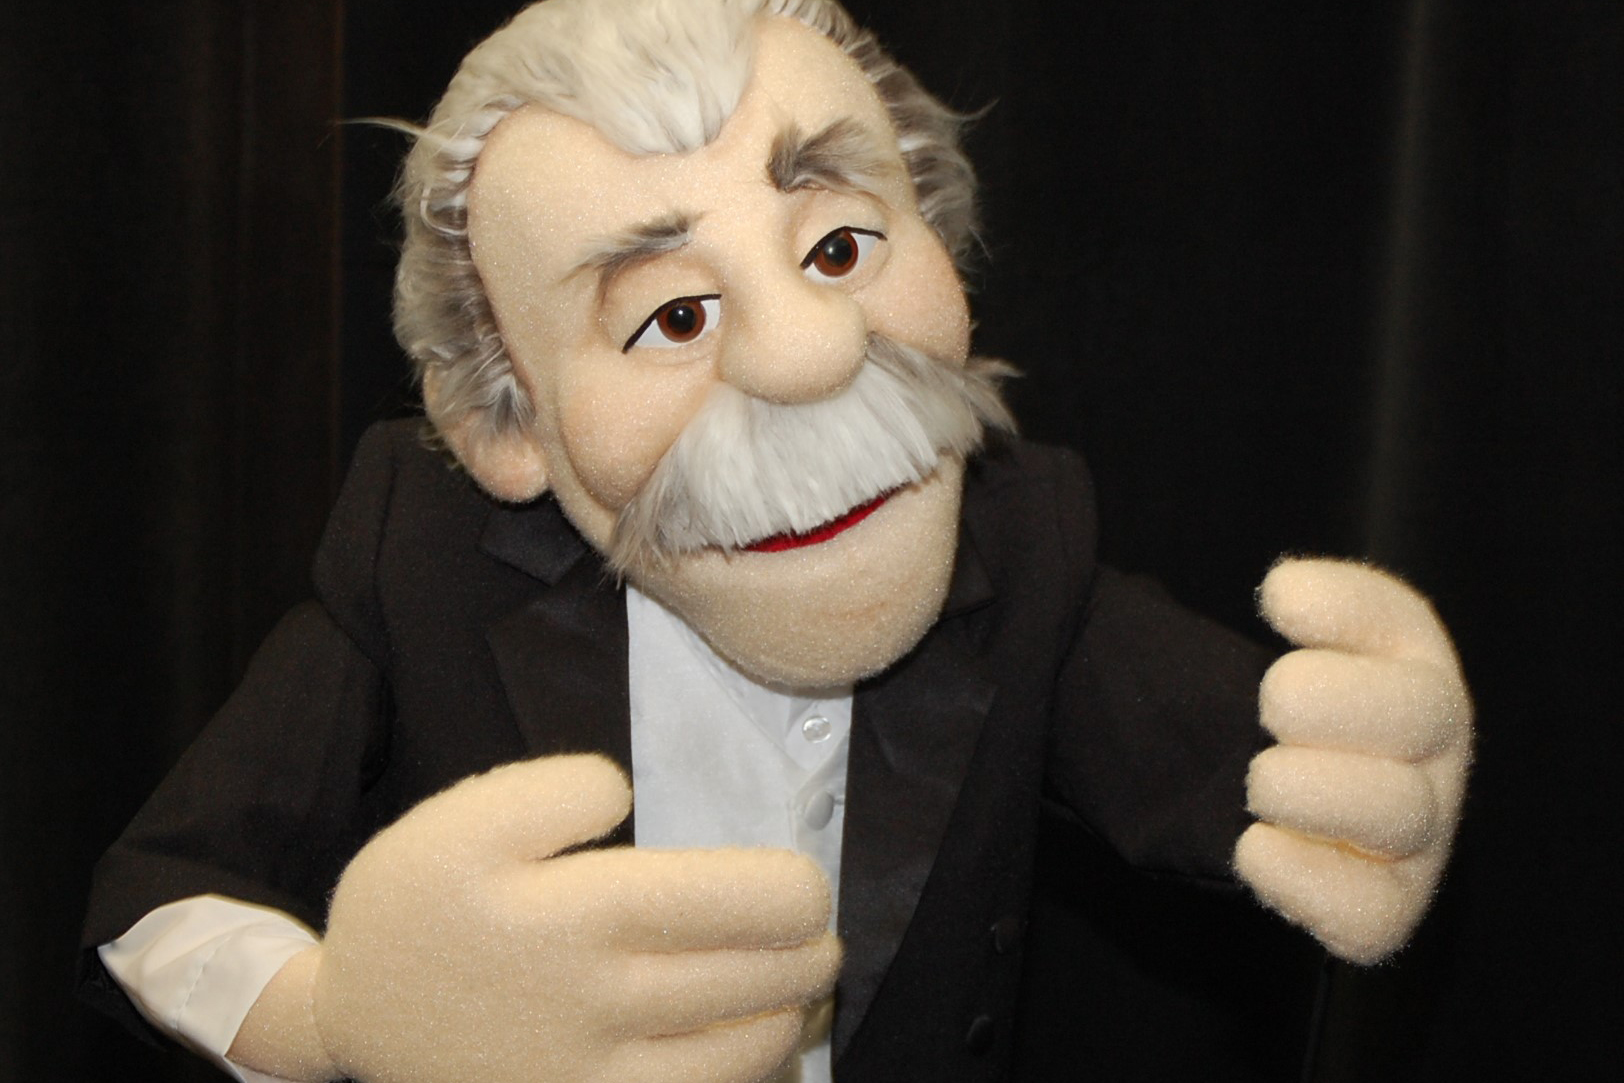 The Arthur Fiedler puppet. (Ken Best/UConn Photo)